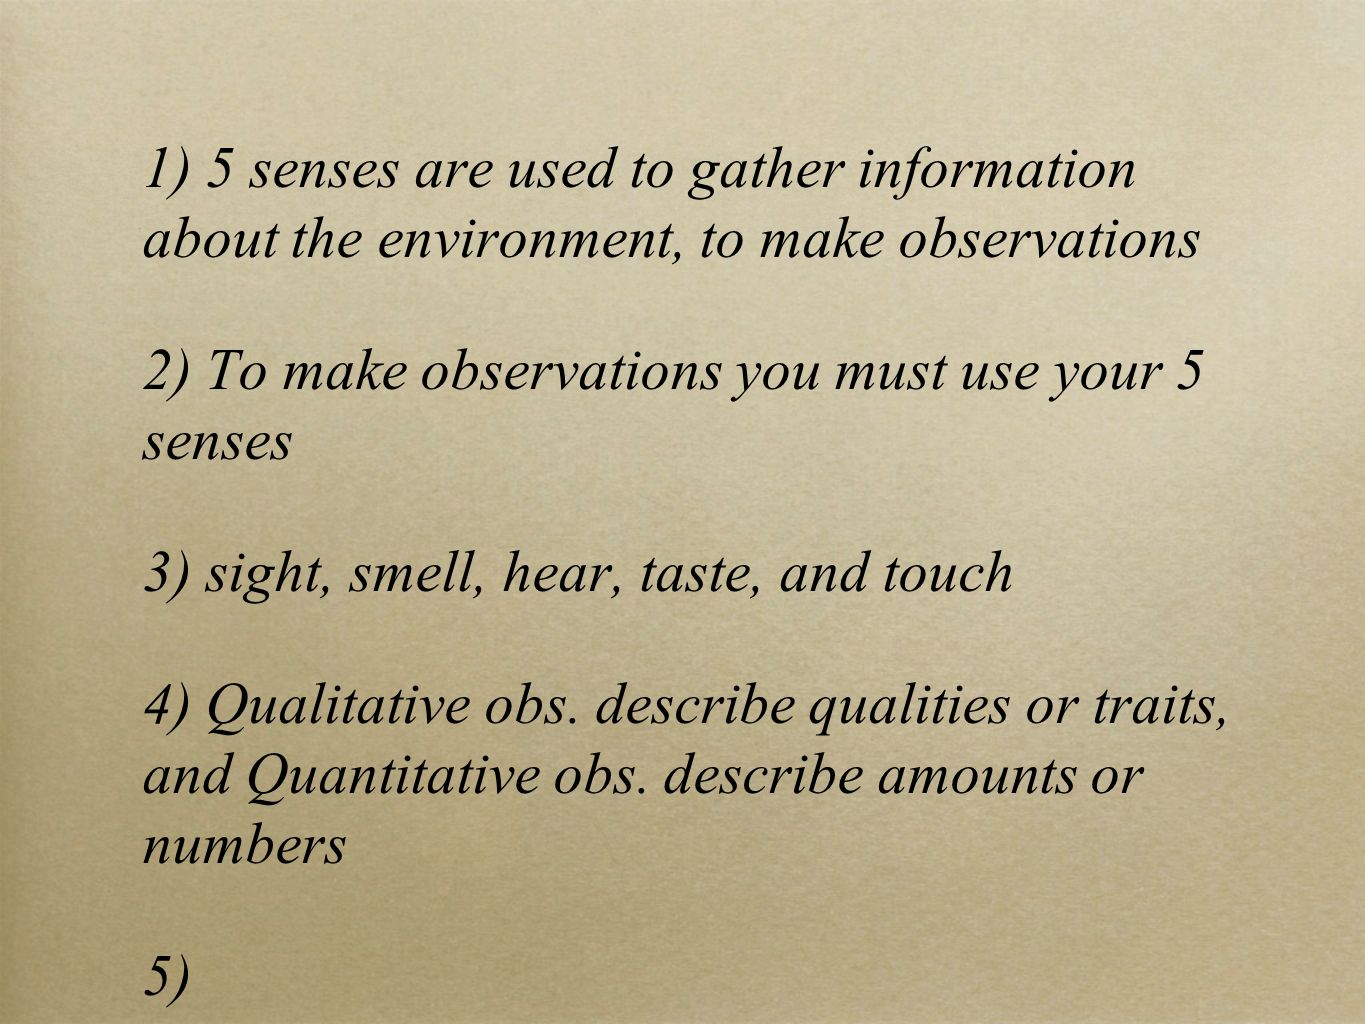 1) 5 senses are used to gather information about the environment, to make observations